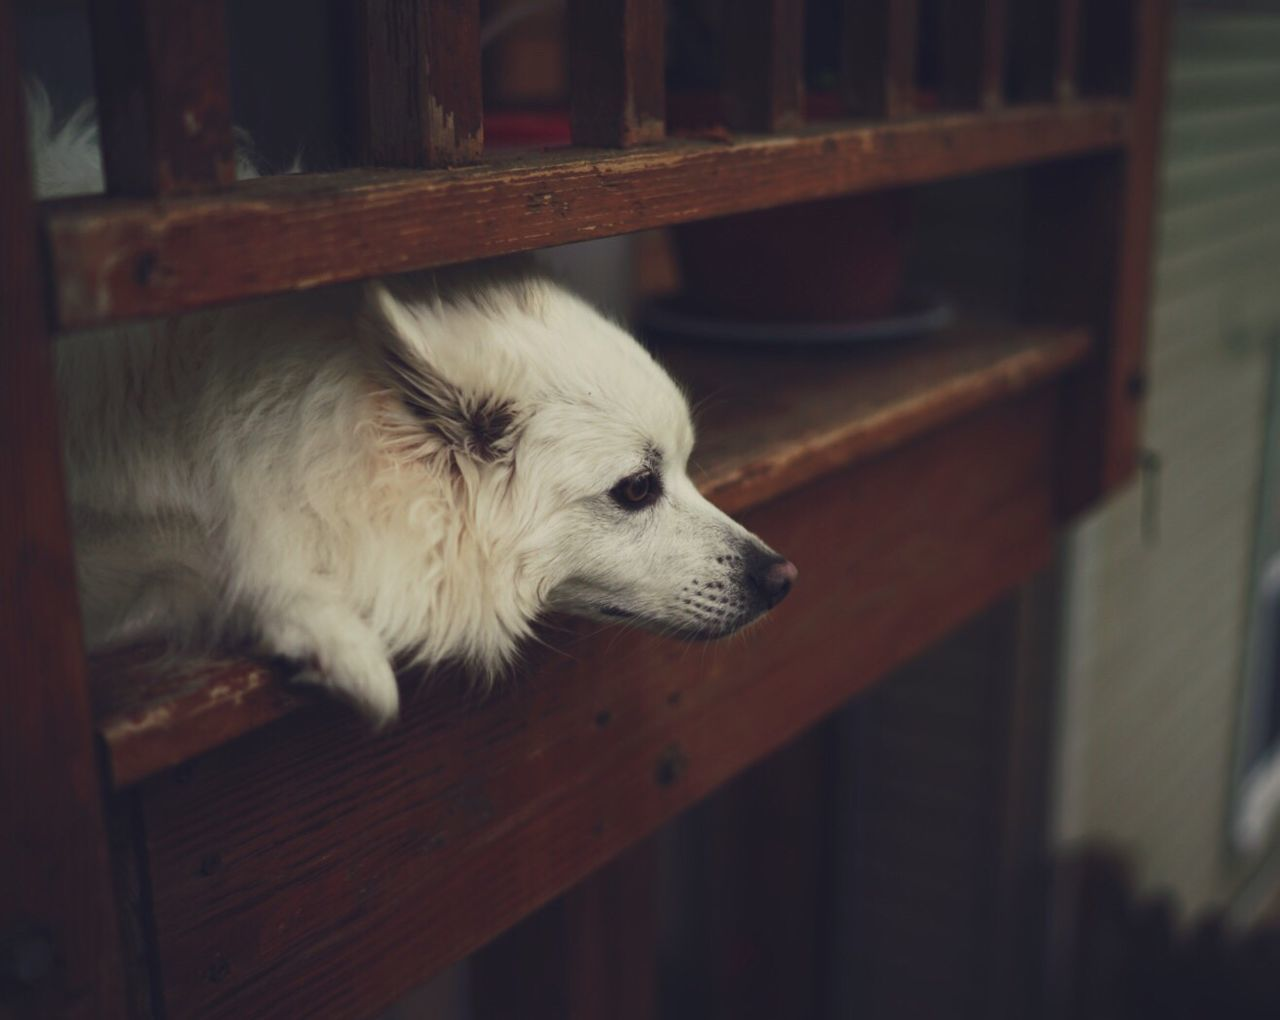 Dog Pets One Animal Indoors  Domestic Animals Mammal Animal Themes No People Close-up Day